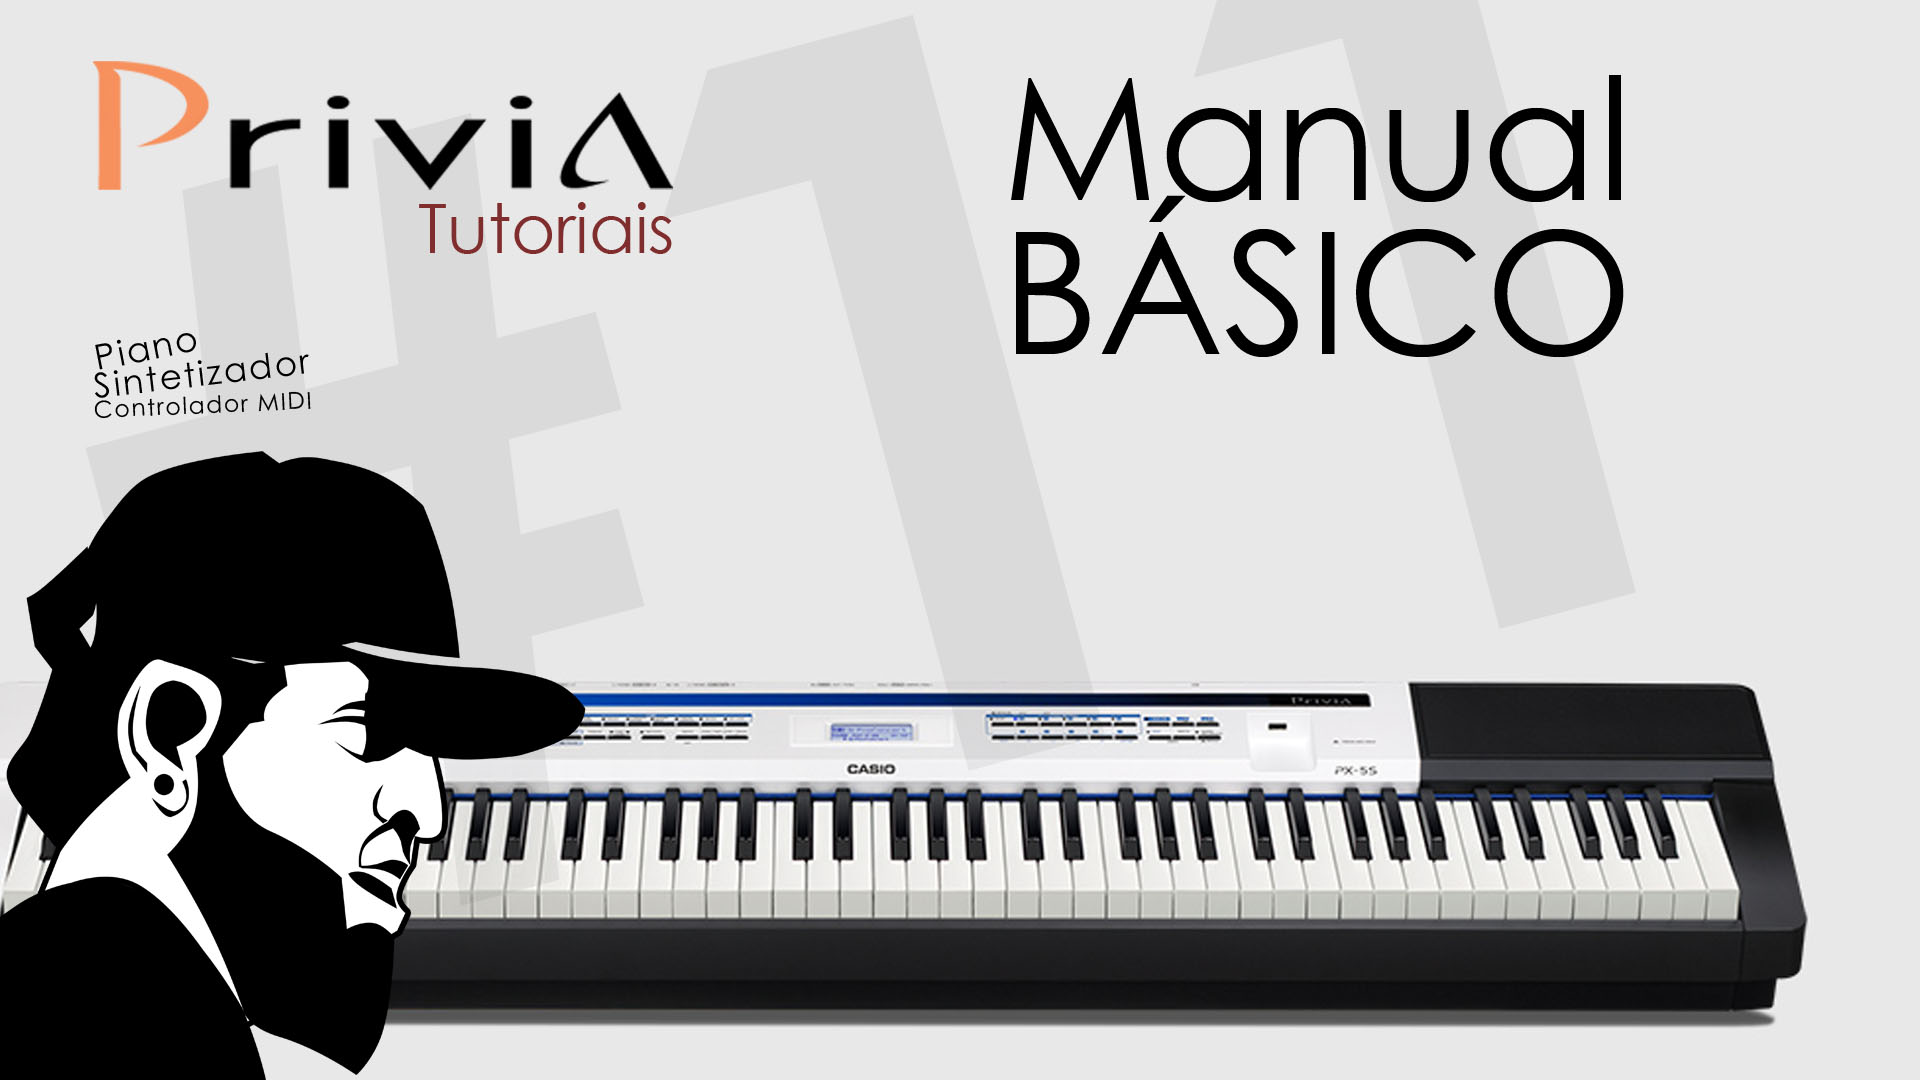 Tutorial Casio Privia PX-5S #11- Manual Básico do Casio Privia PX-5S